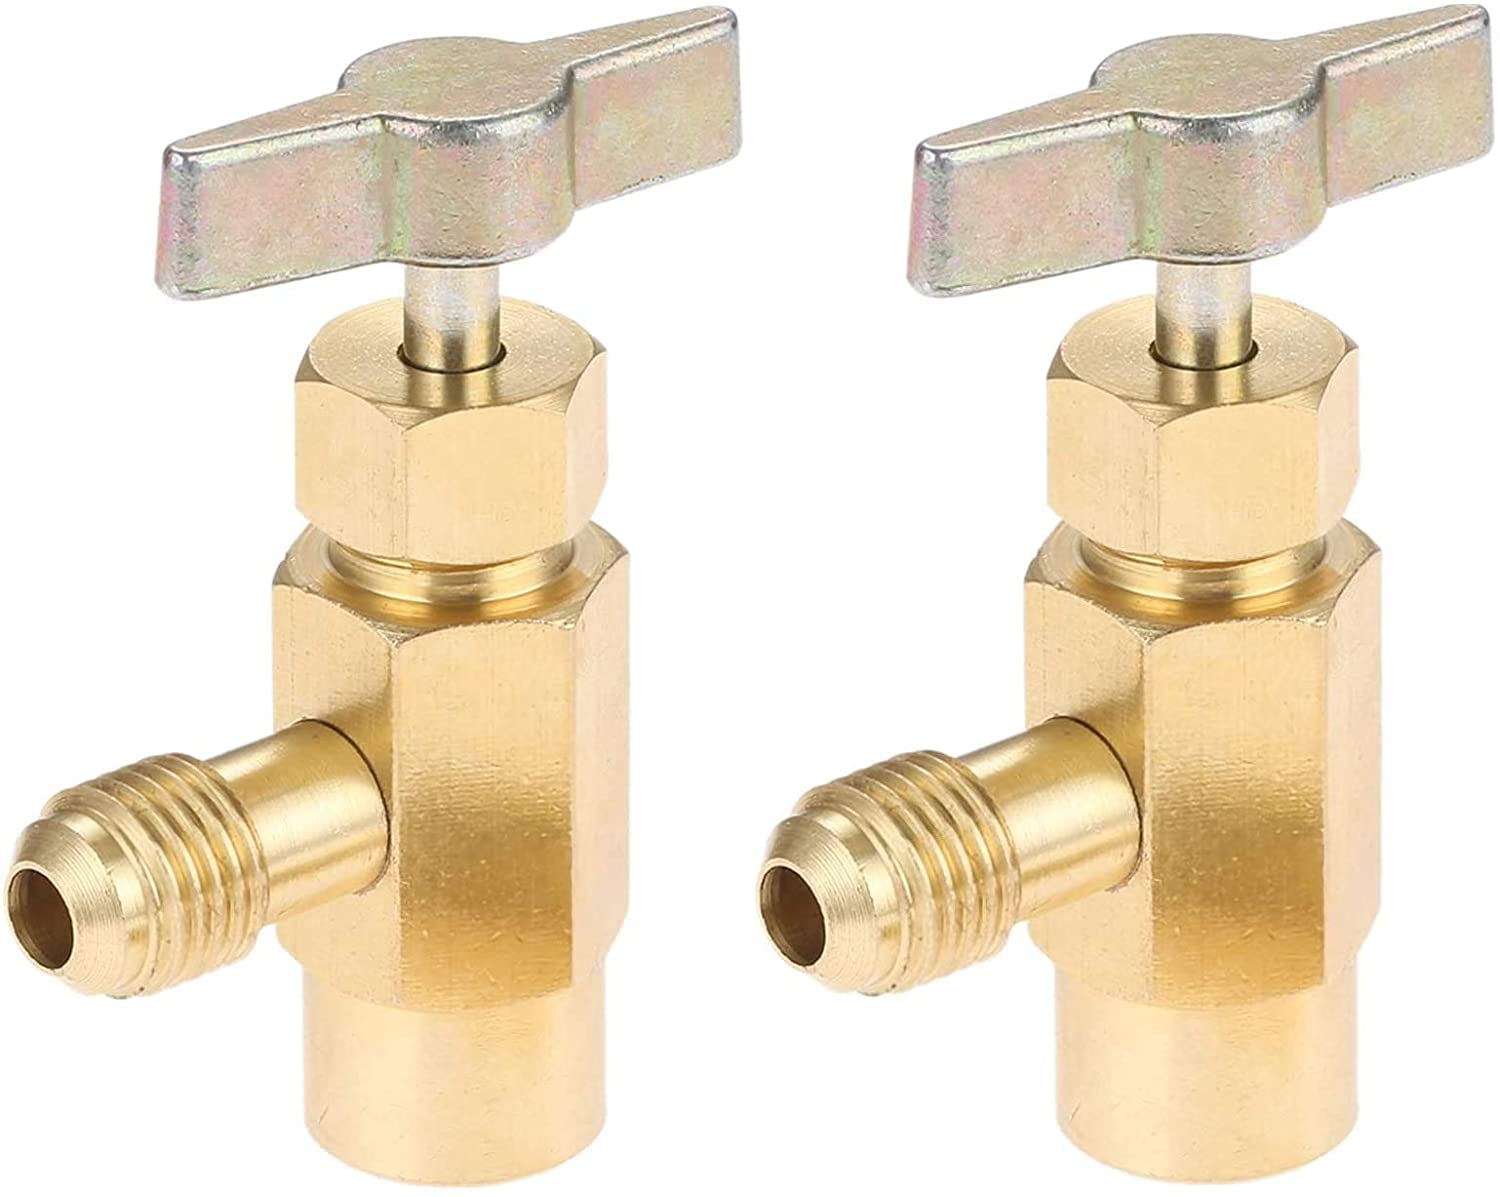 2PC Self-Sealing R134a A/C Can Tap 1/2 Acme Tapper Dispensing Valve Refrigerant HVAC Charging Hose Connect TAP Valve Car AC Recharging Cans R134A